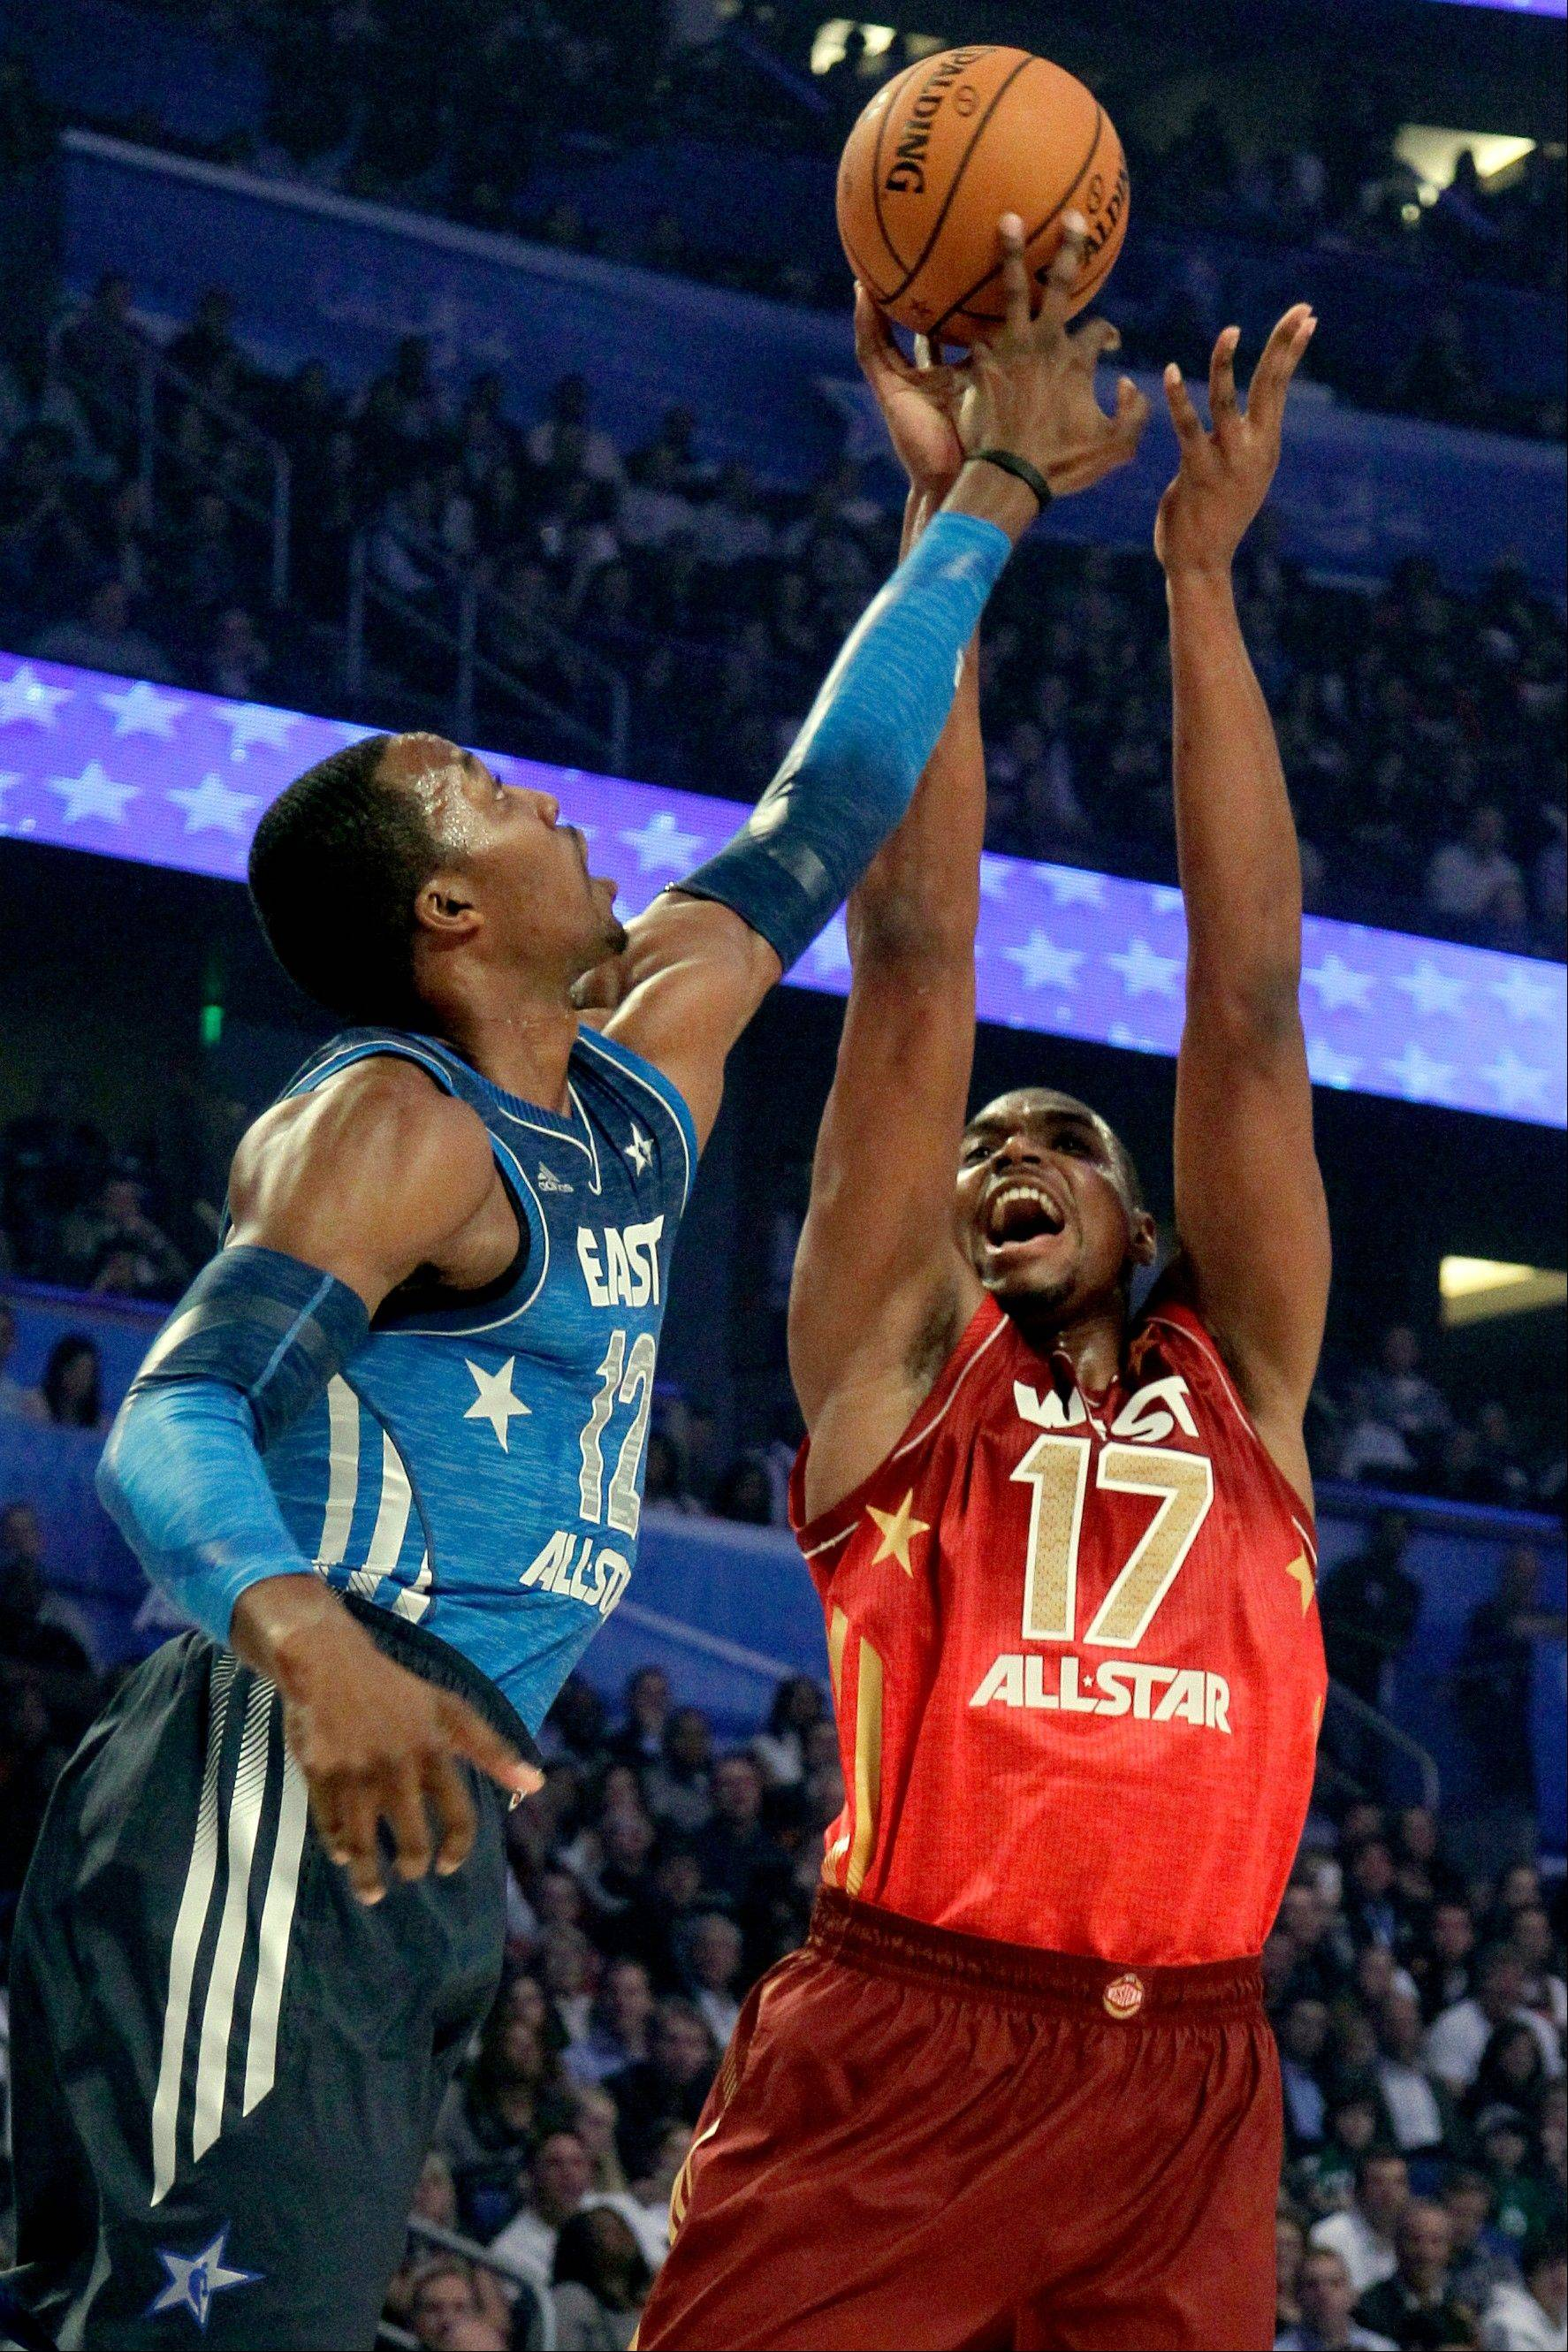 Dwight Howard, of the Orlando Magic, blocks a shot by Andrew Bynum, of the Los Angeles Lakers, during the NBA All-Star Game on Sunday in Orlando, Fla. Bynum's West squad prevailed 152-149. See story, Page 3.